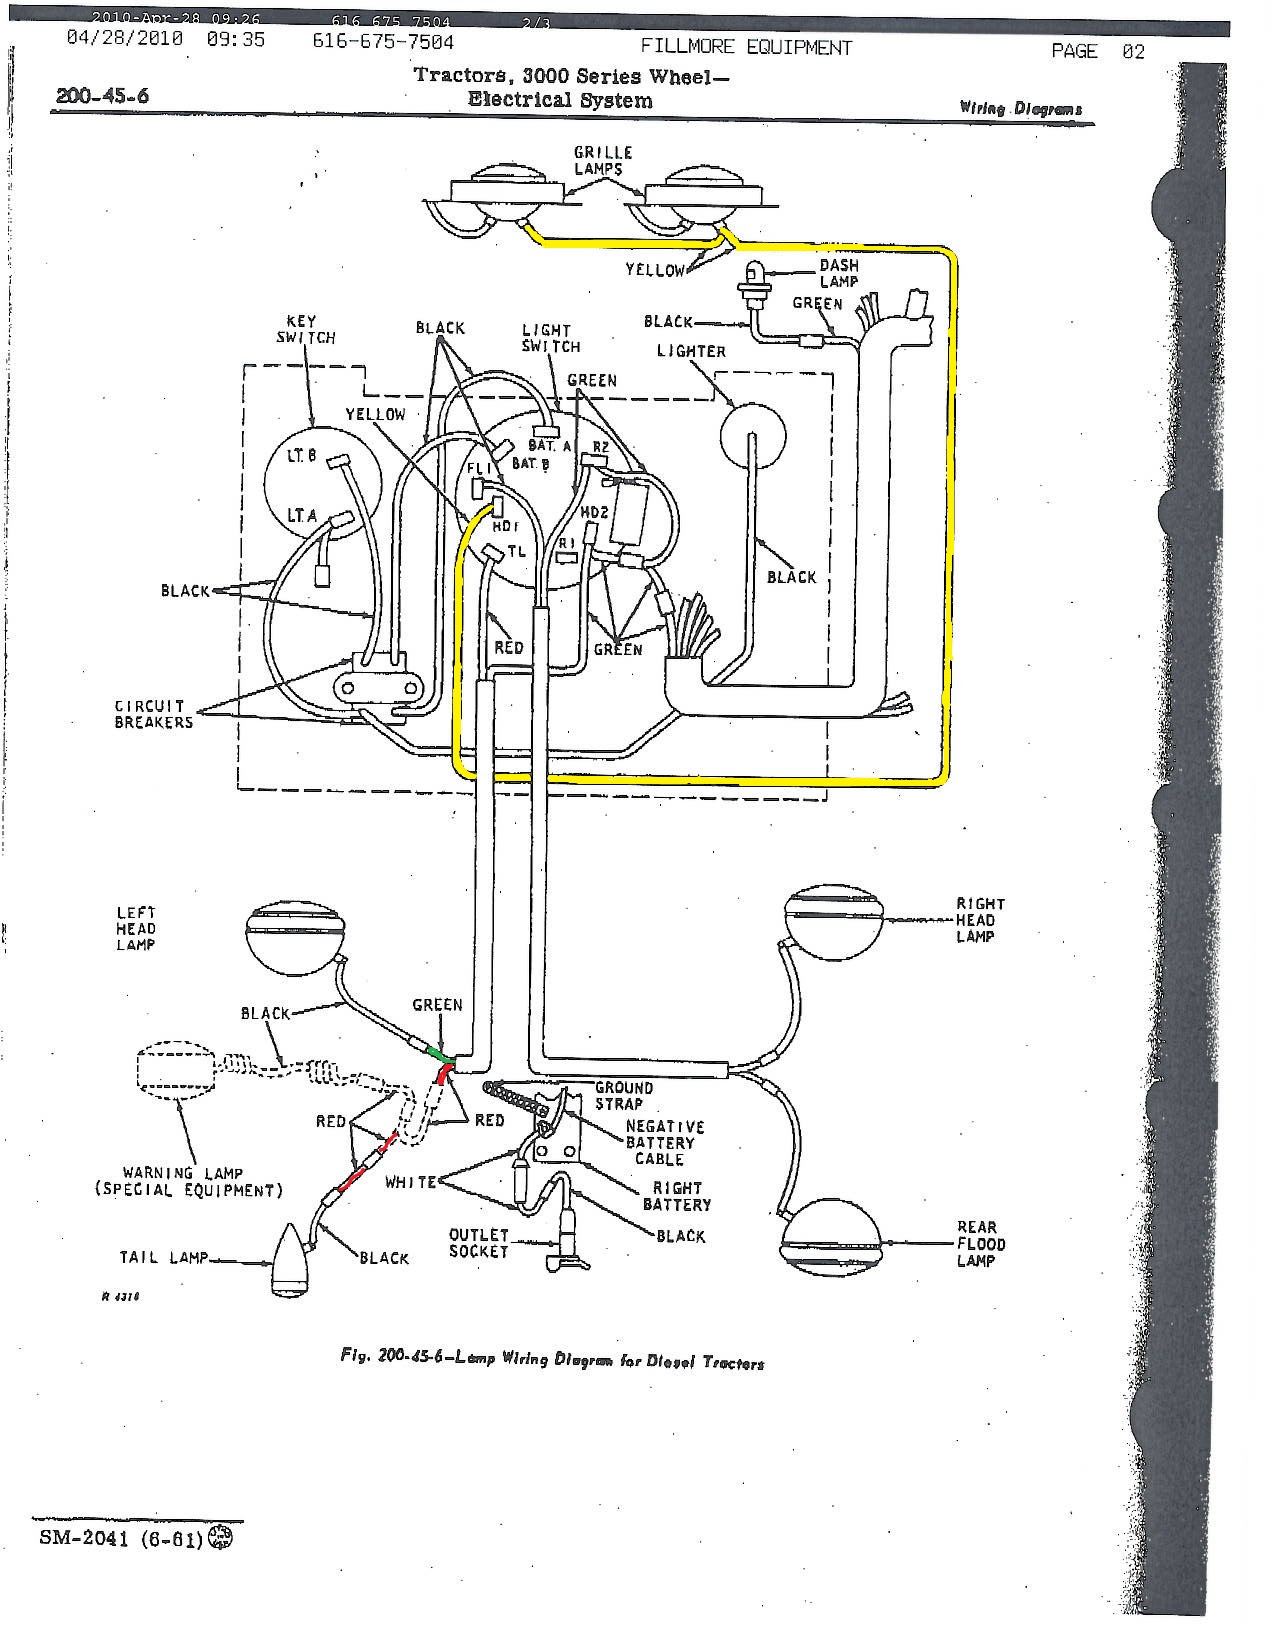 John Deere 3010 Ignition Switch Wiring Diagram